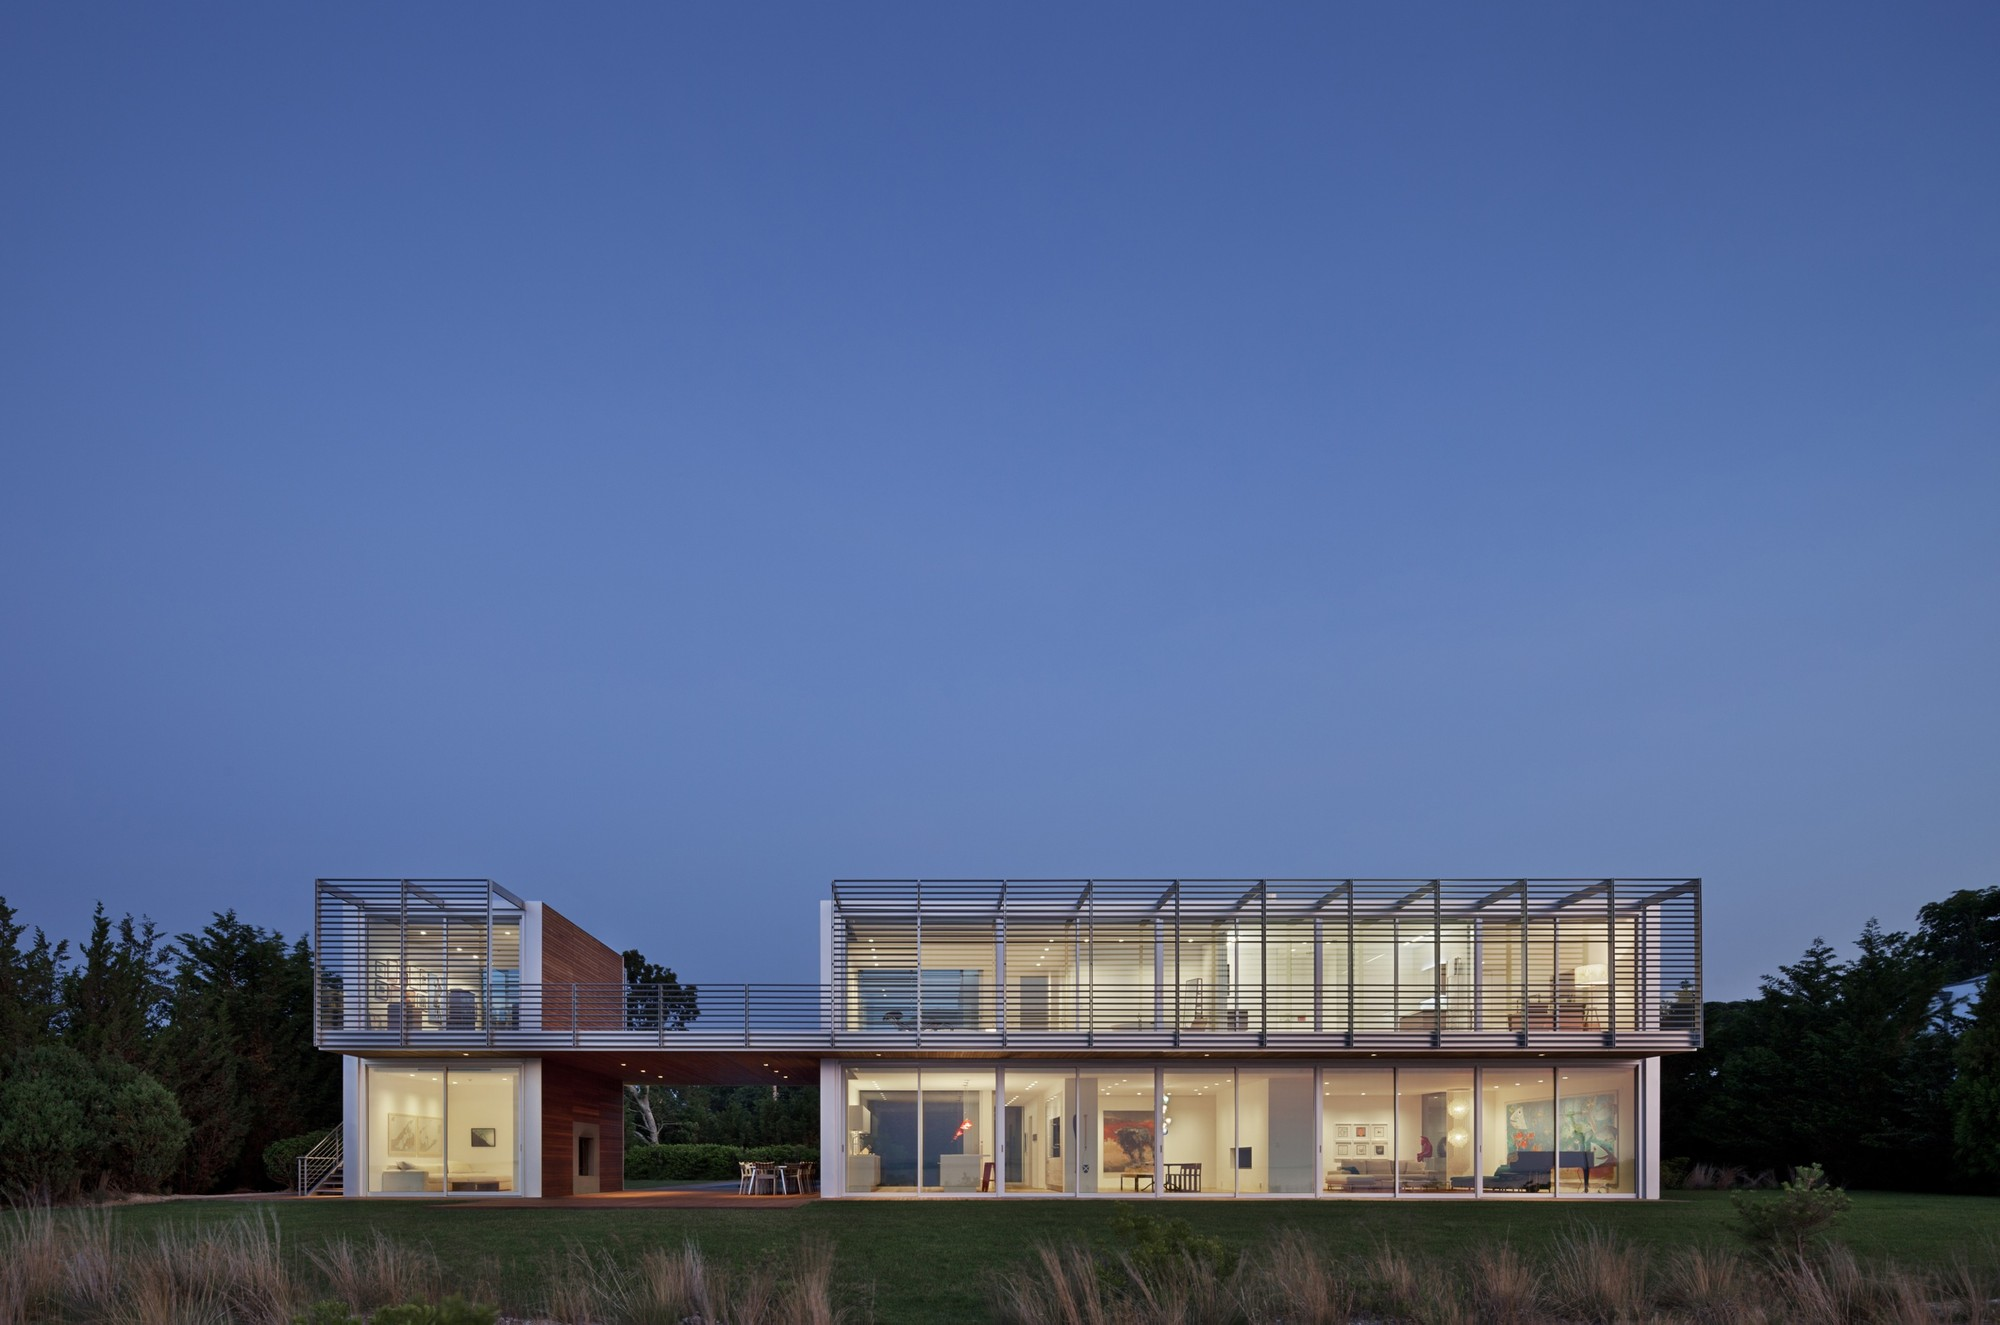 The Bay House / Roger Ferris + Partners, © Arch Photo Inc, New York